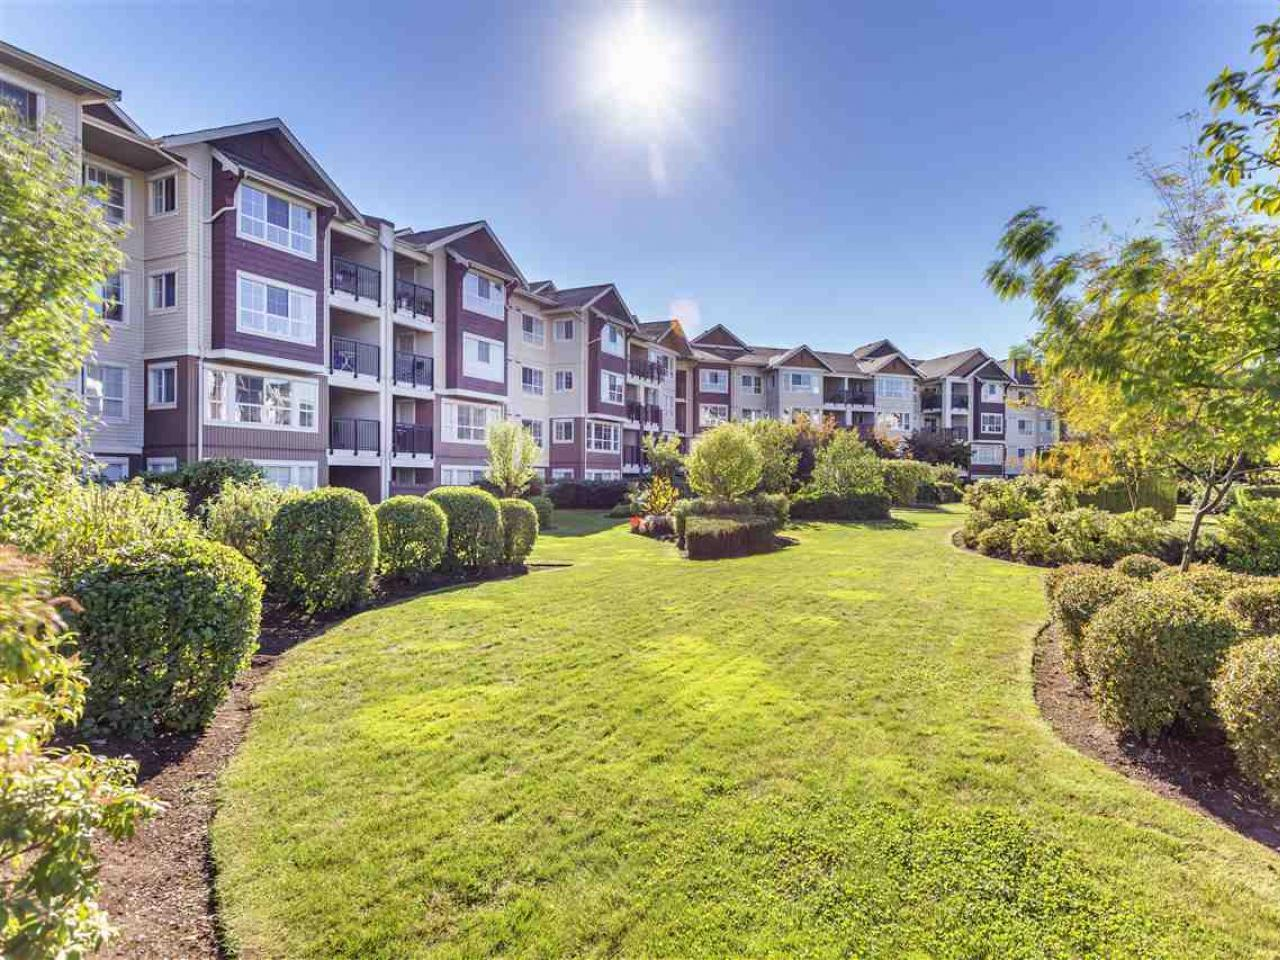 315 - 19677 Meadow Gardens Way, North Meadows PI, Pitt Meadows